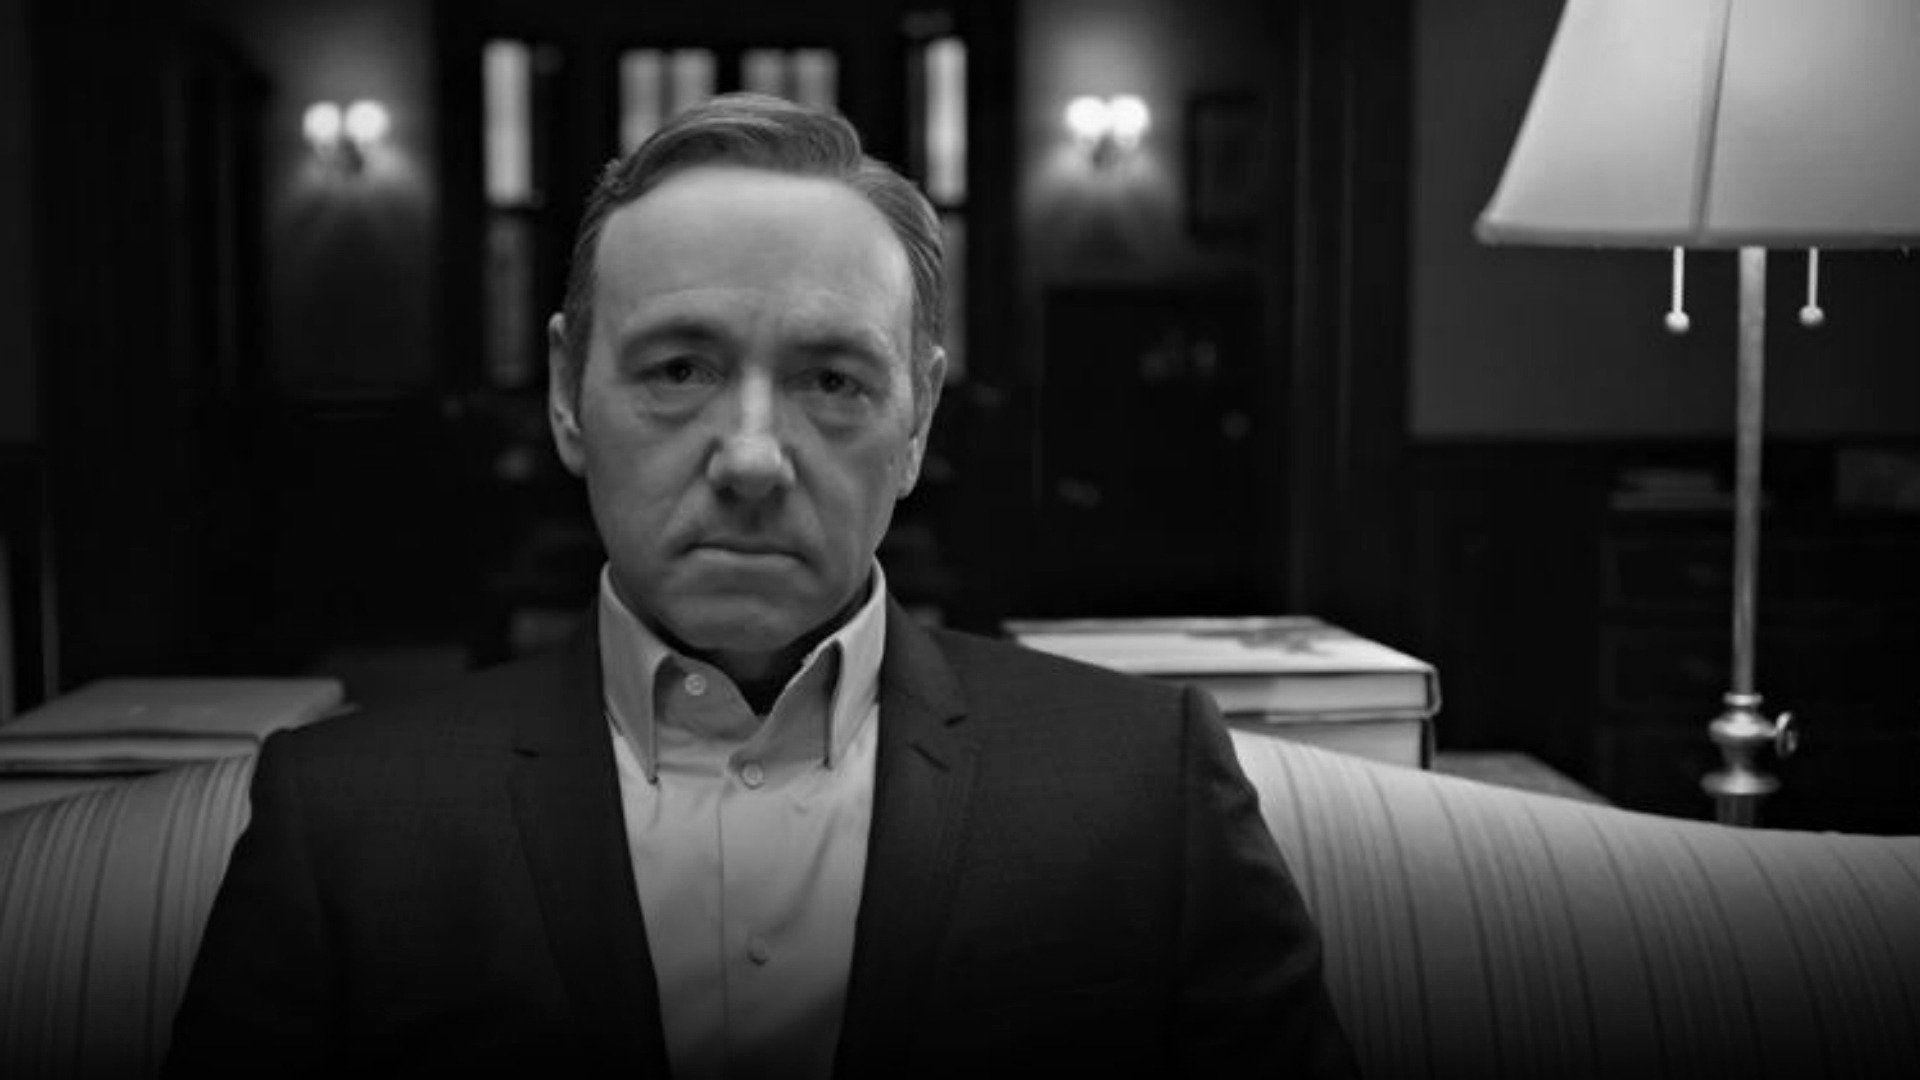 House of Cards wallpapers HD backgrounds download desktop • iPhones